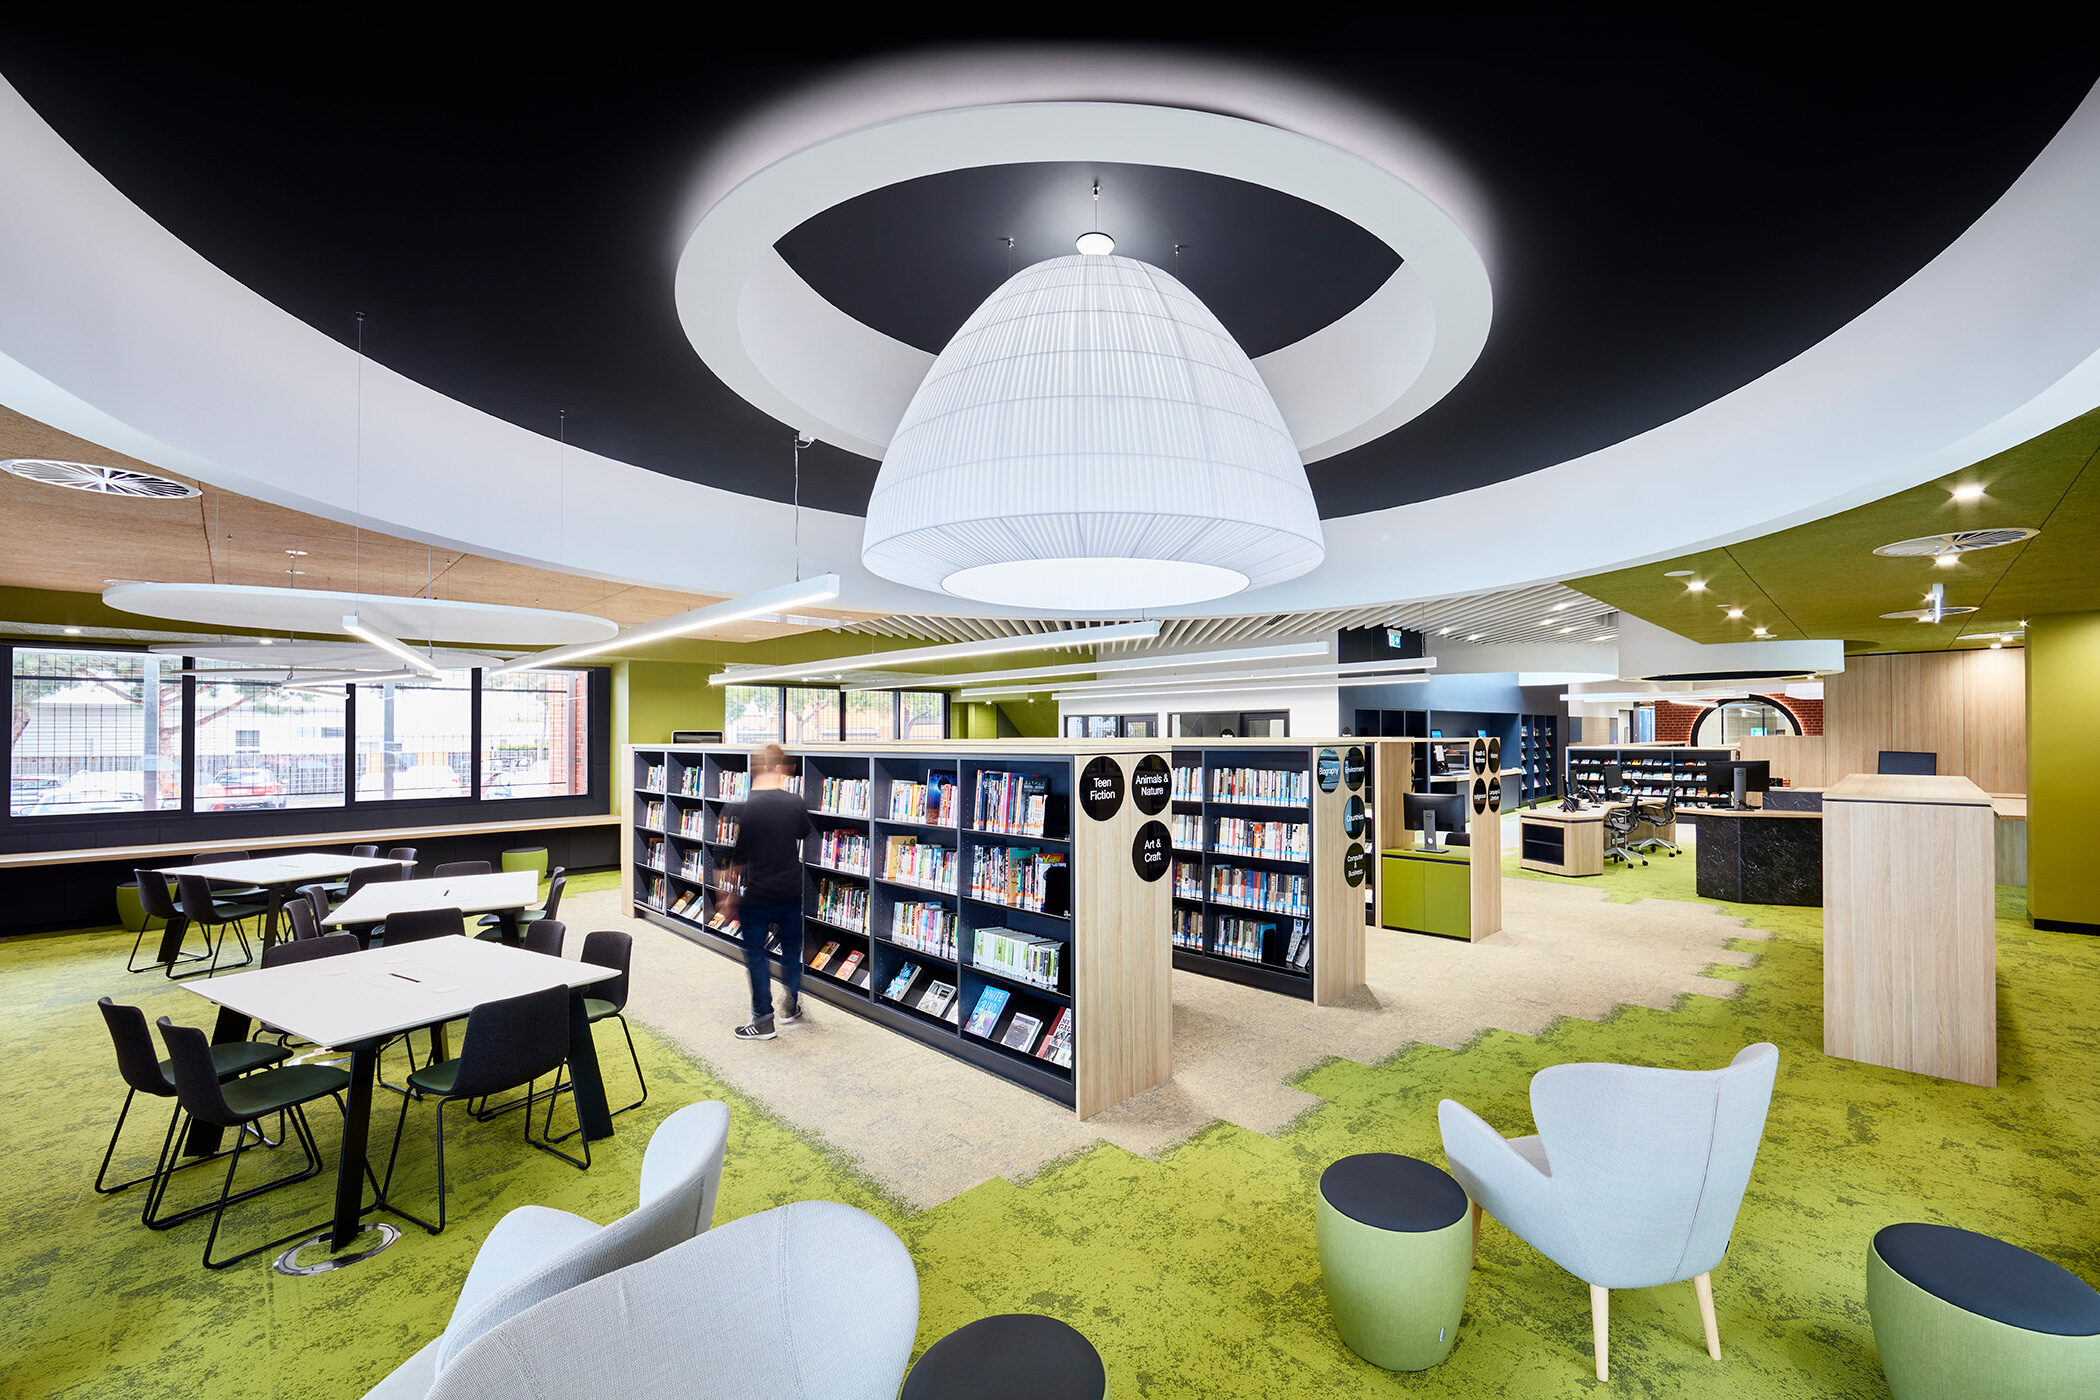 Sandringham Library large pendant light and circular ceiling feature, green carpet and person perusing bookshelves - Interior photography example / concept